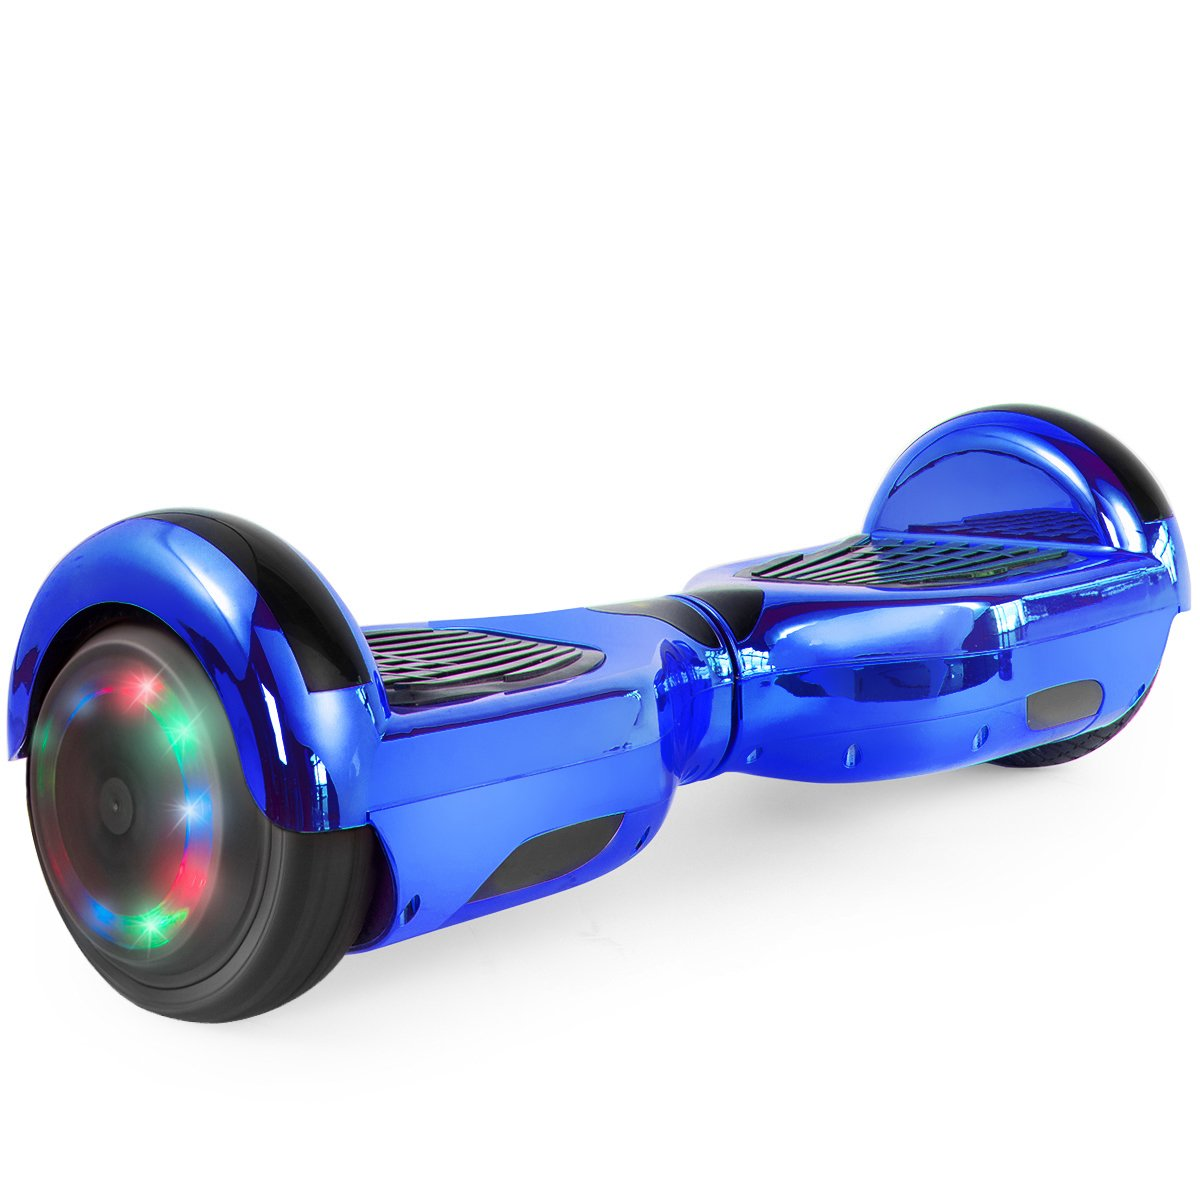 "WorryFree Gadgets Hoverboard UL 2272 Certified Light-up Wheel 6.5"" Bluetooth Speaker with LED Light Self Balancing Wheel Electric Scooter- Assorted Colors"